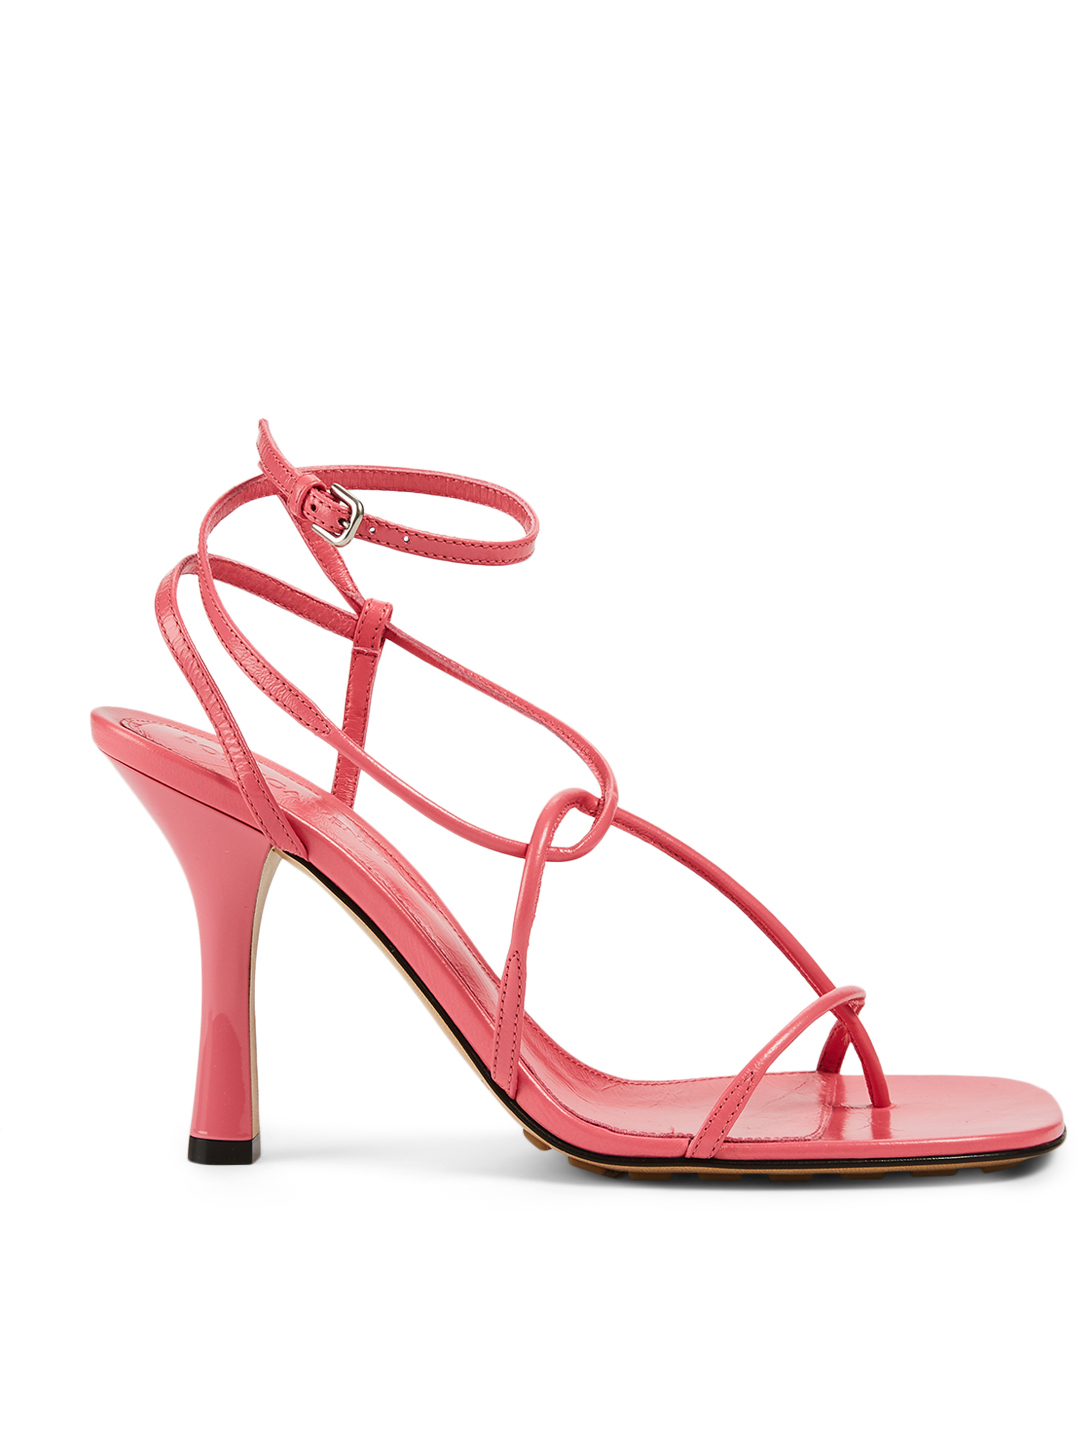 BOTTEGA VENETA The Line Leather Heeled Sandals Women's Pink